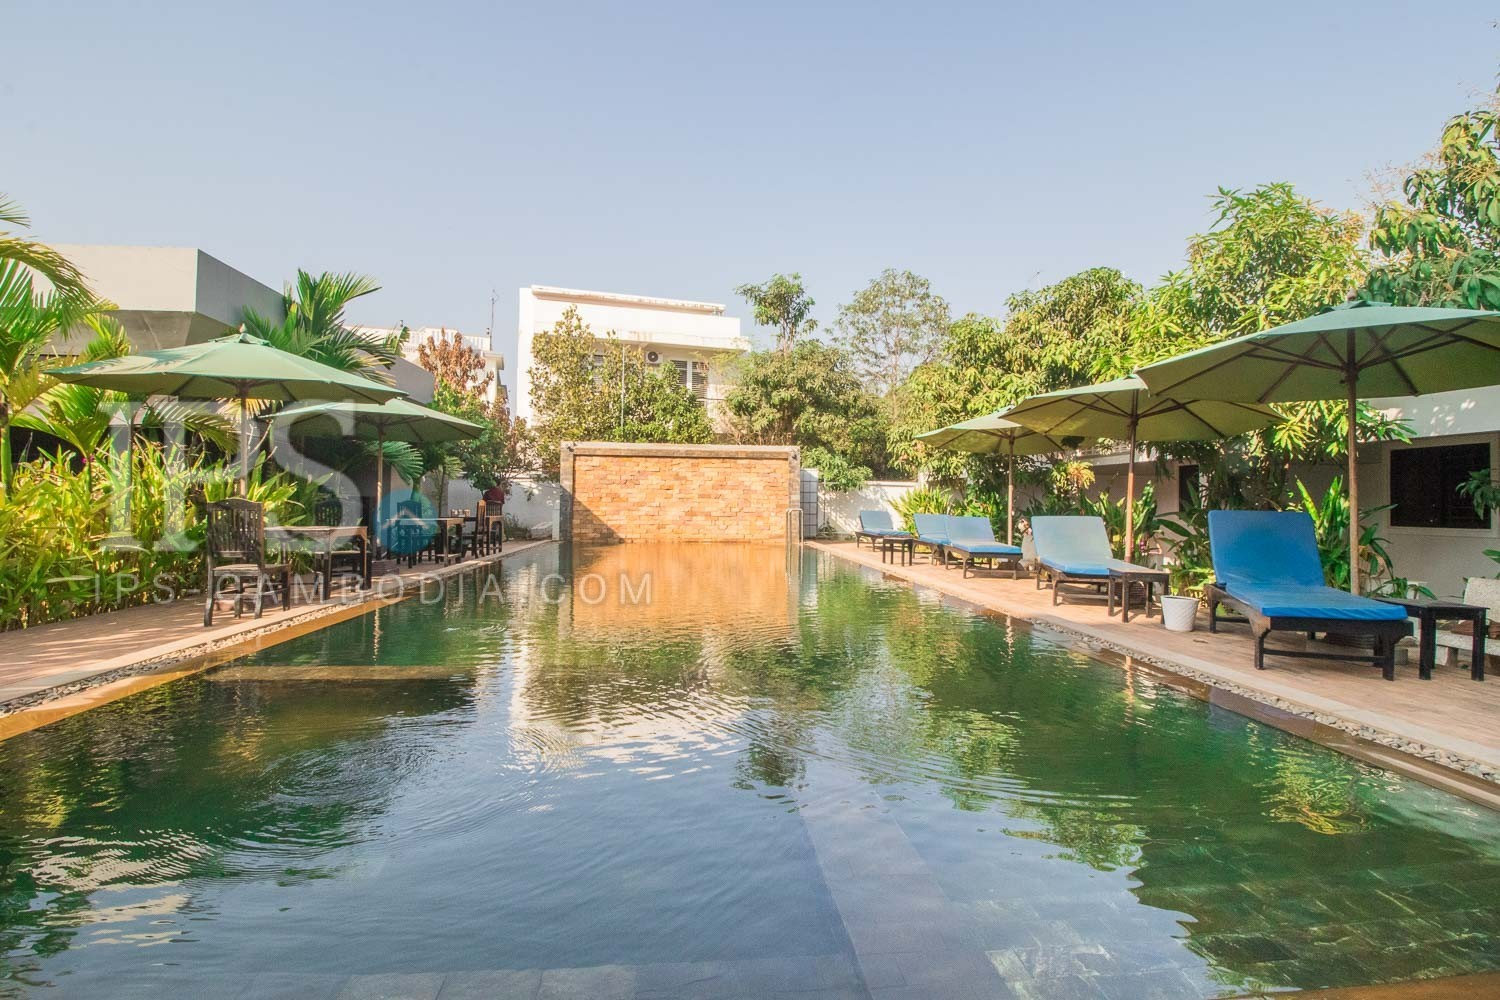 34 Room Hotel For Sale - Svay Dungkum, Siem Reap